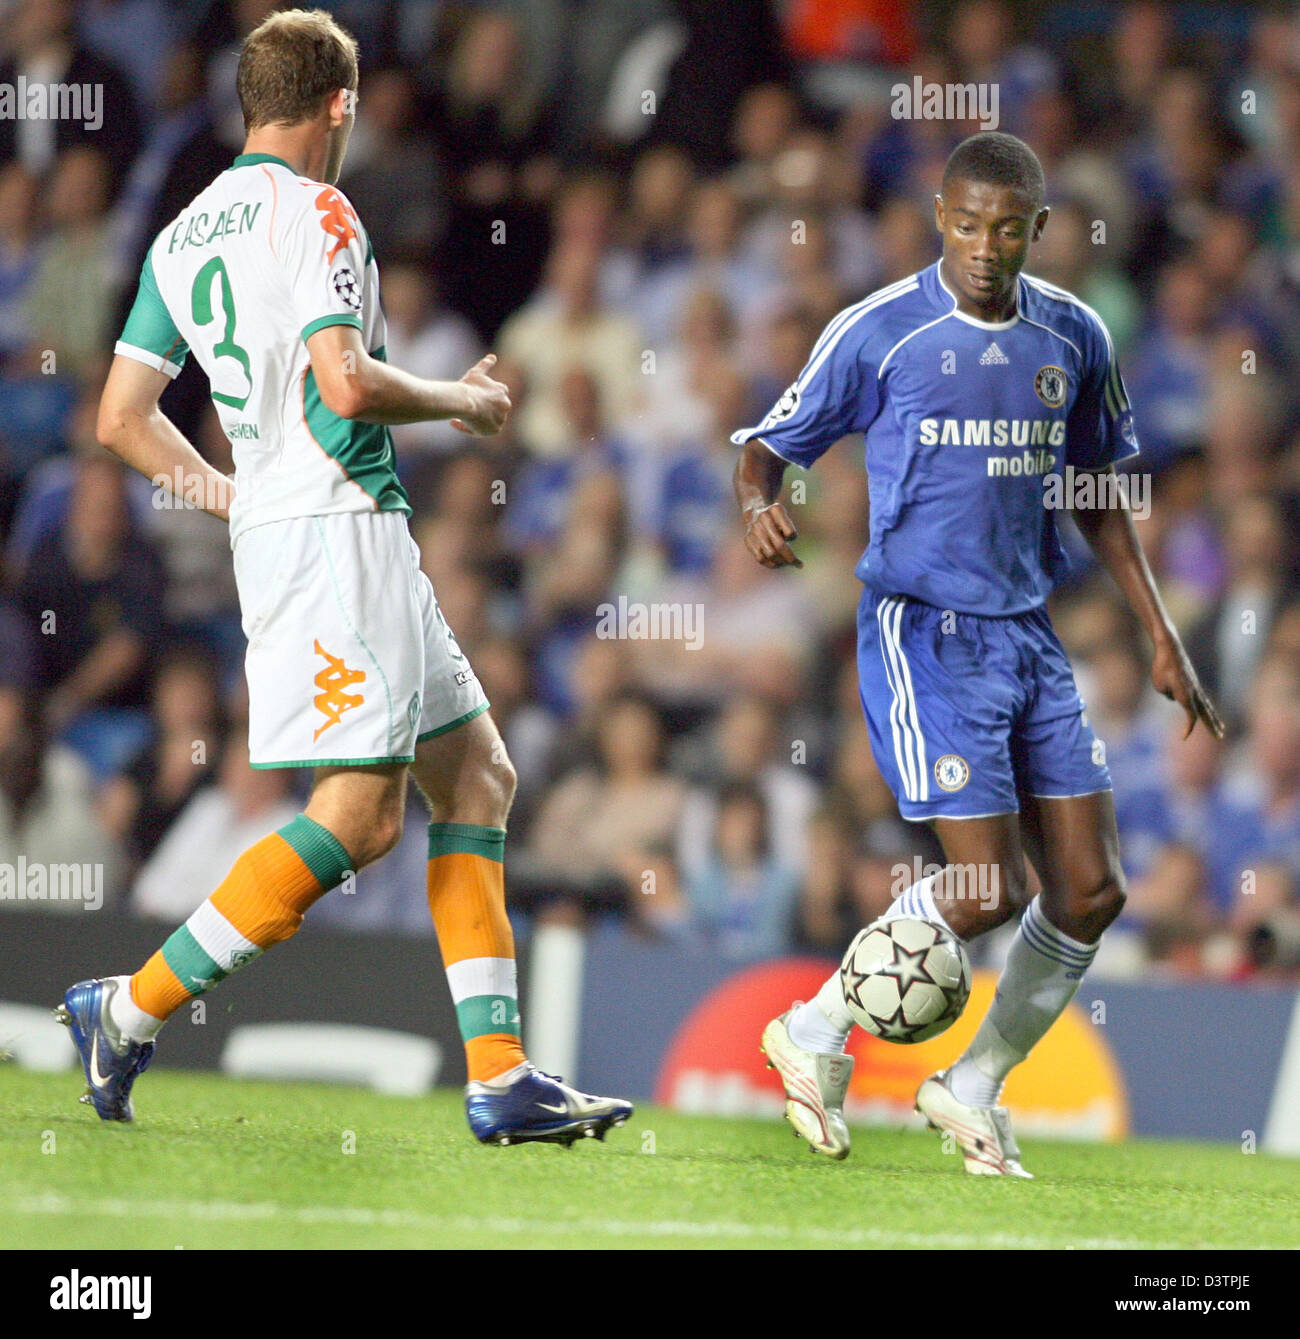 Bremen's Petri Pasanen (L) and Chelsea's Salomon Kalou (R) shown in action during the Champions League match between Stock Photo